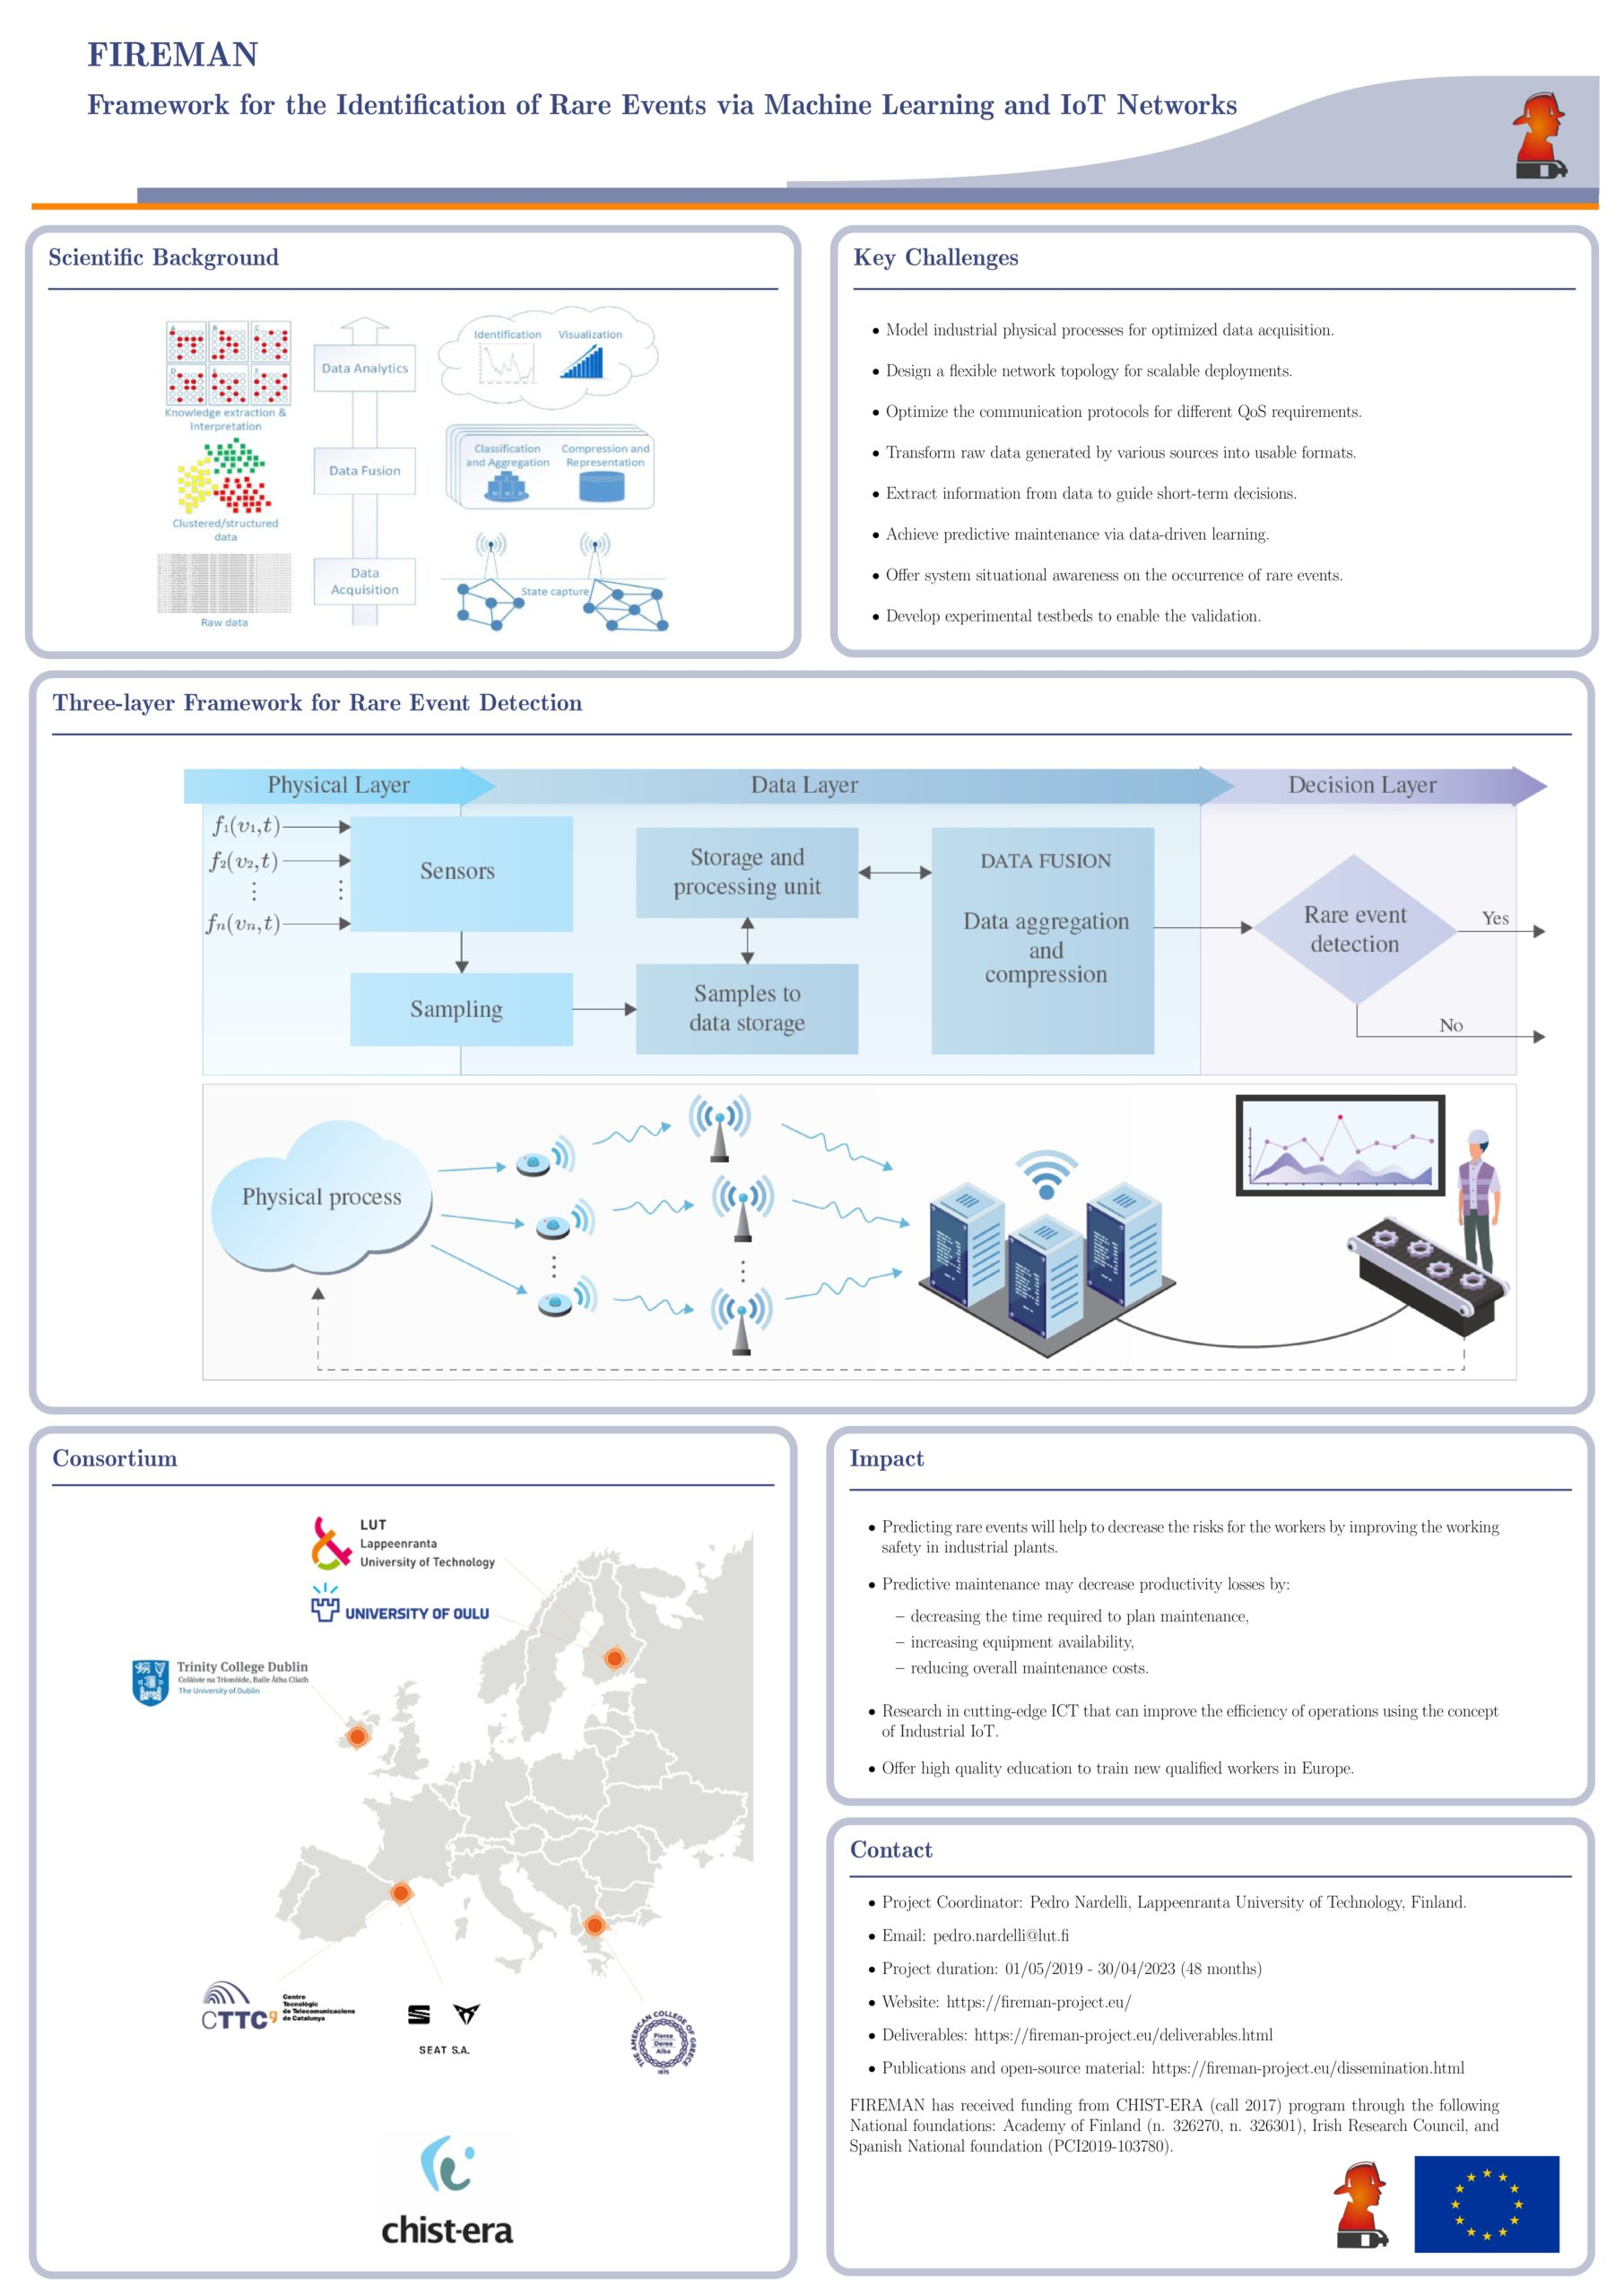 FIREMAN – Framework for the Identification of Rare Events via Machine Learning and IoT Networks